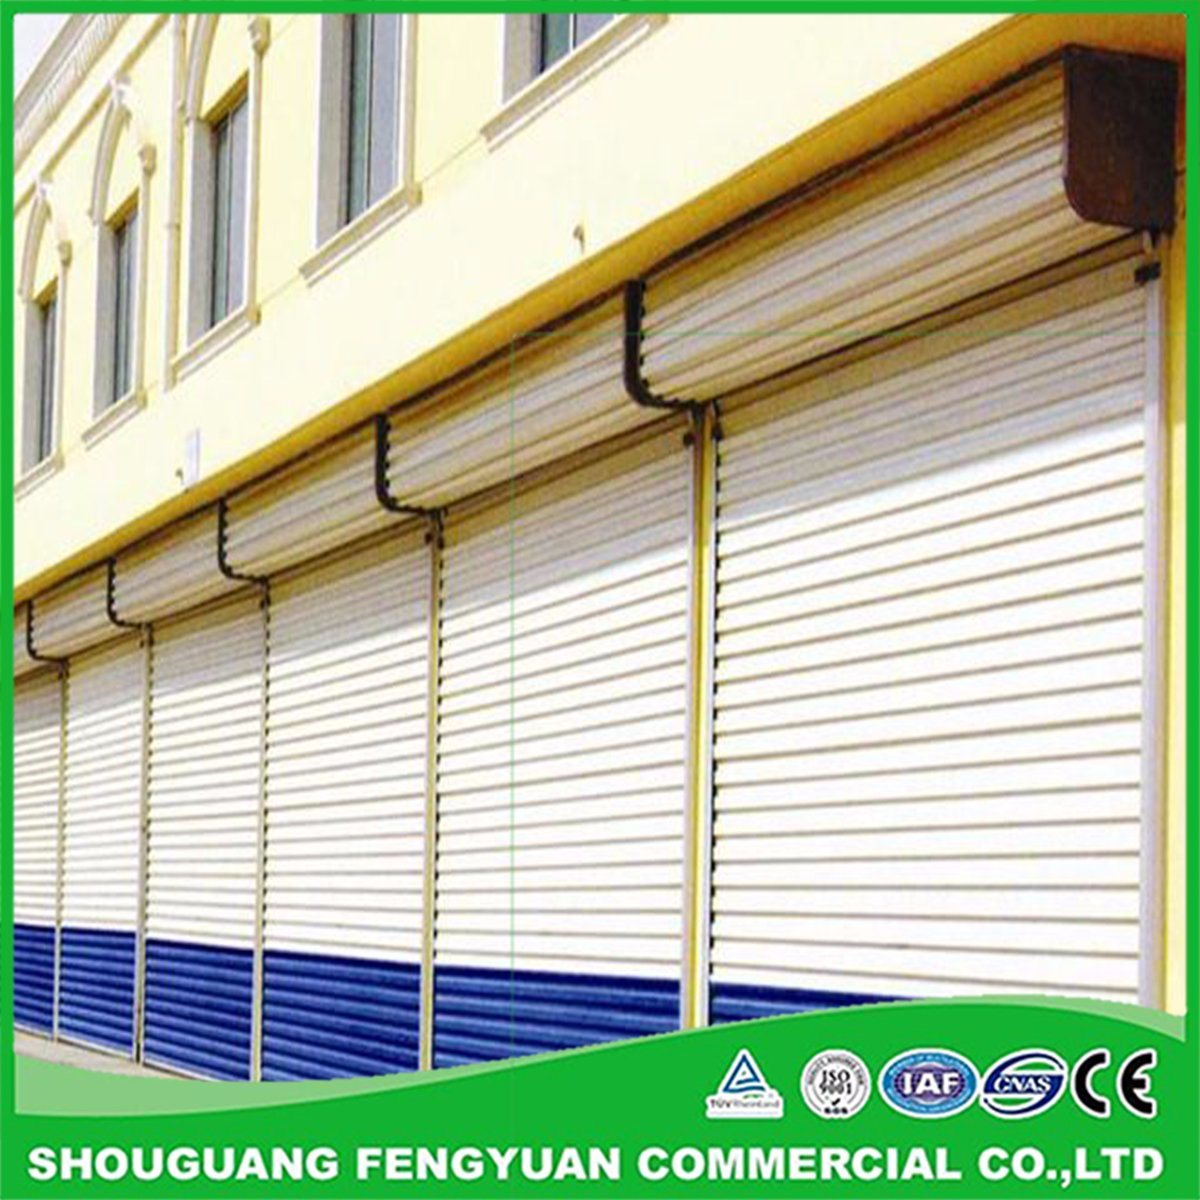 Hot Item Good Trusted Factory On Colorful Auto Rolling Shutters